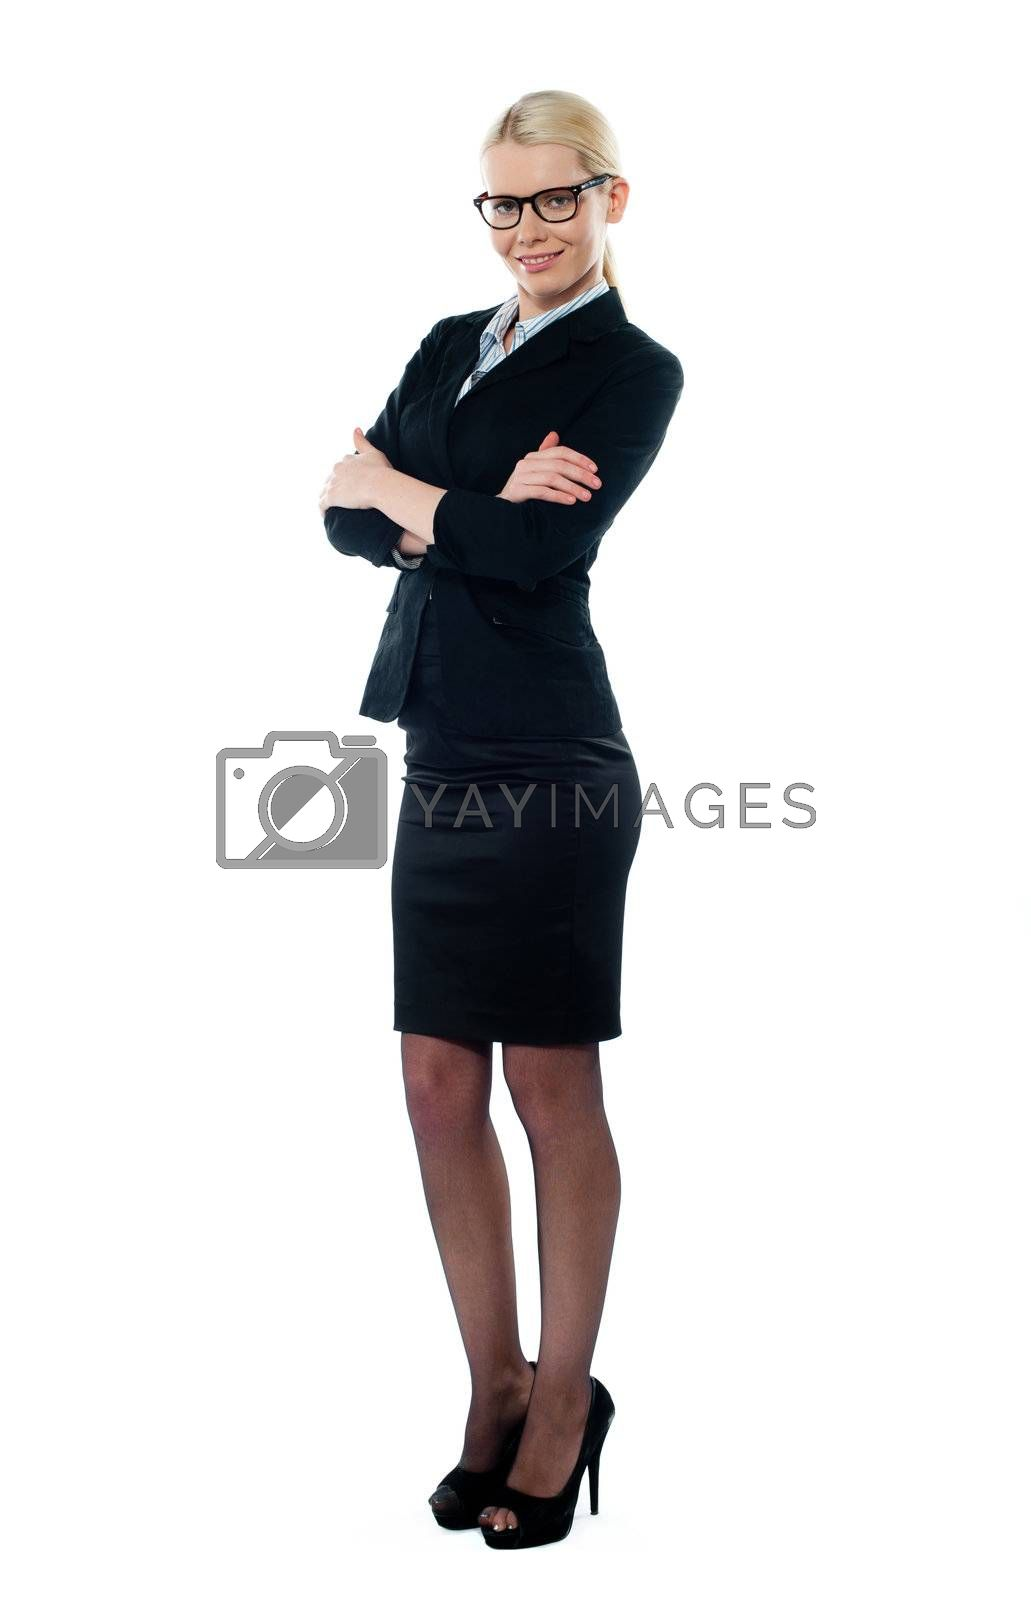 Full view welldessed corporate woman posing confidently in front of camera